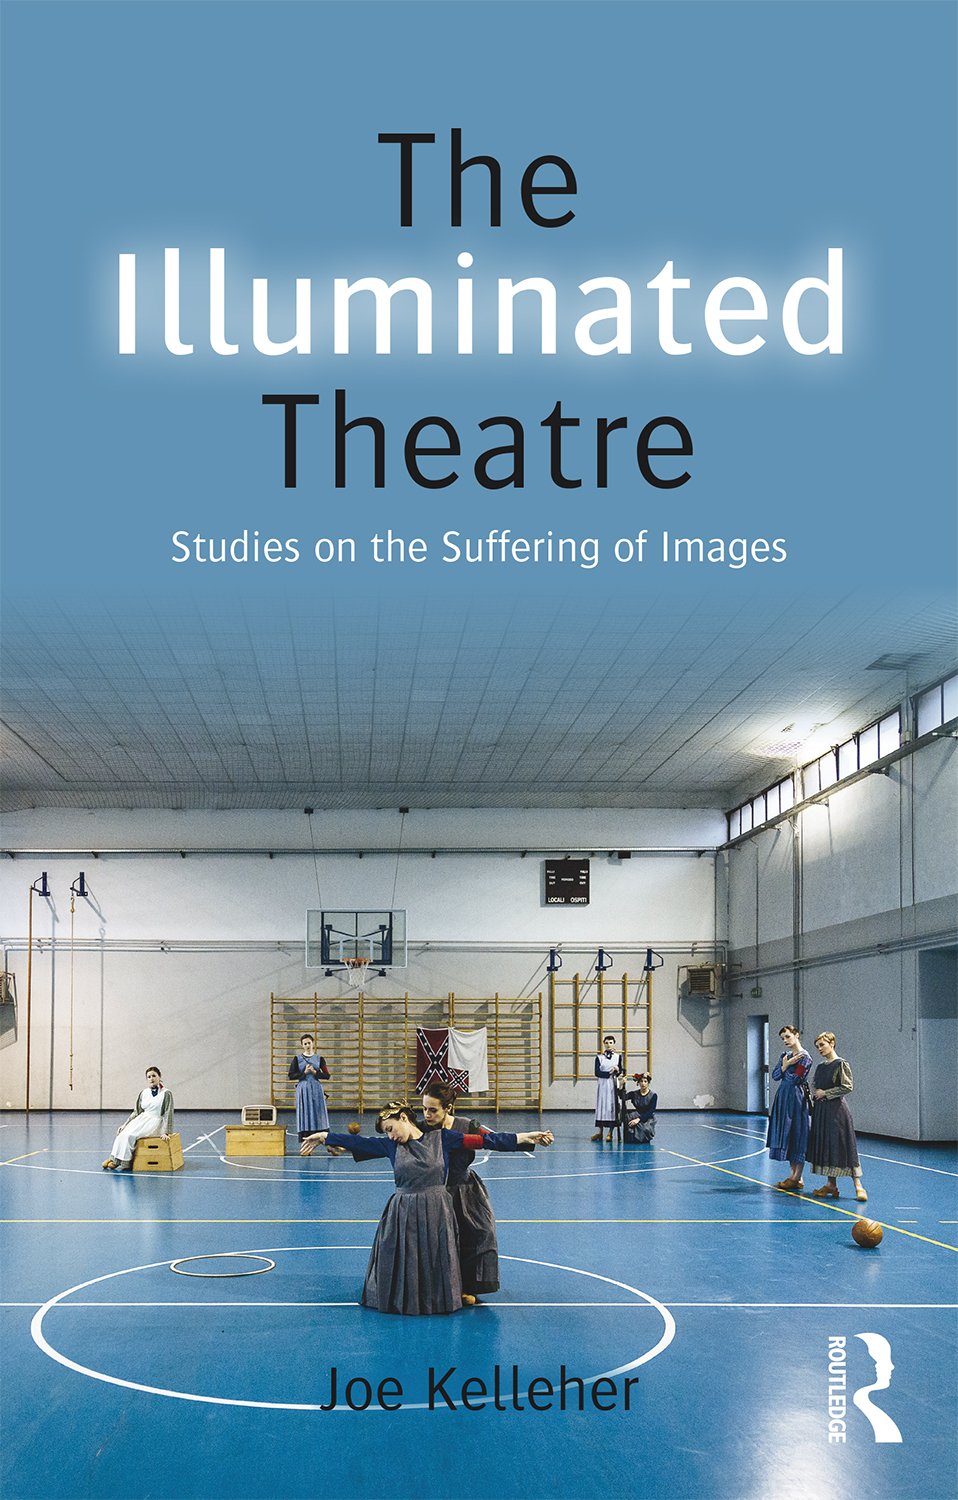 Joe Kelleher  The Illuminated Theatre.Studies on the Suffering of Images    Book Cover   Routledge, 2015